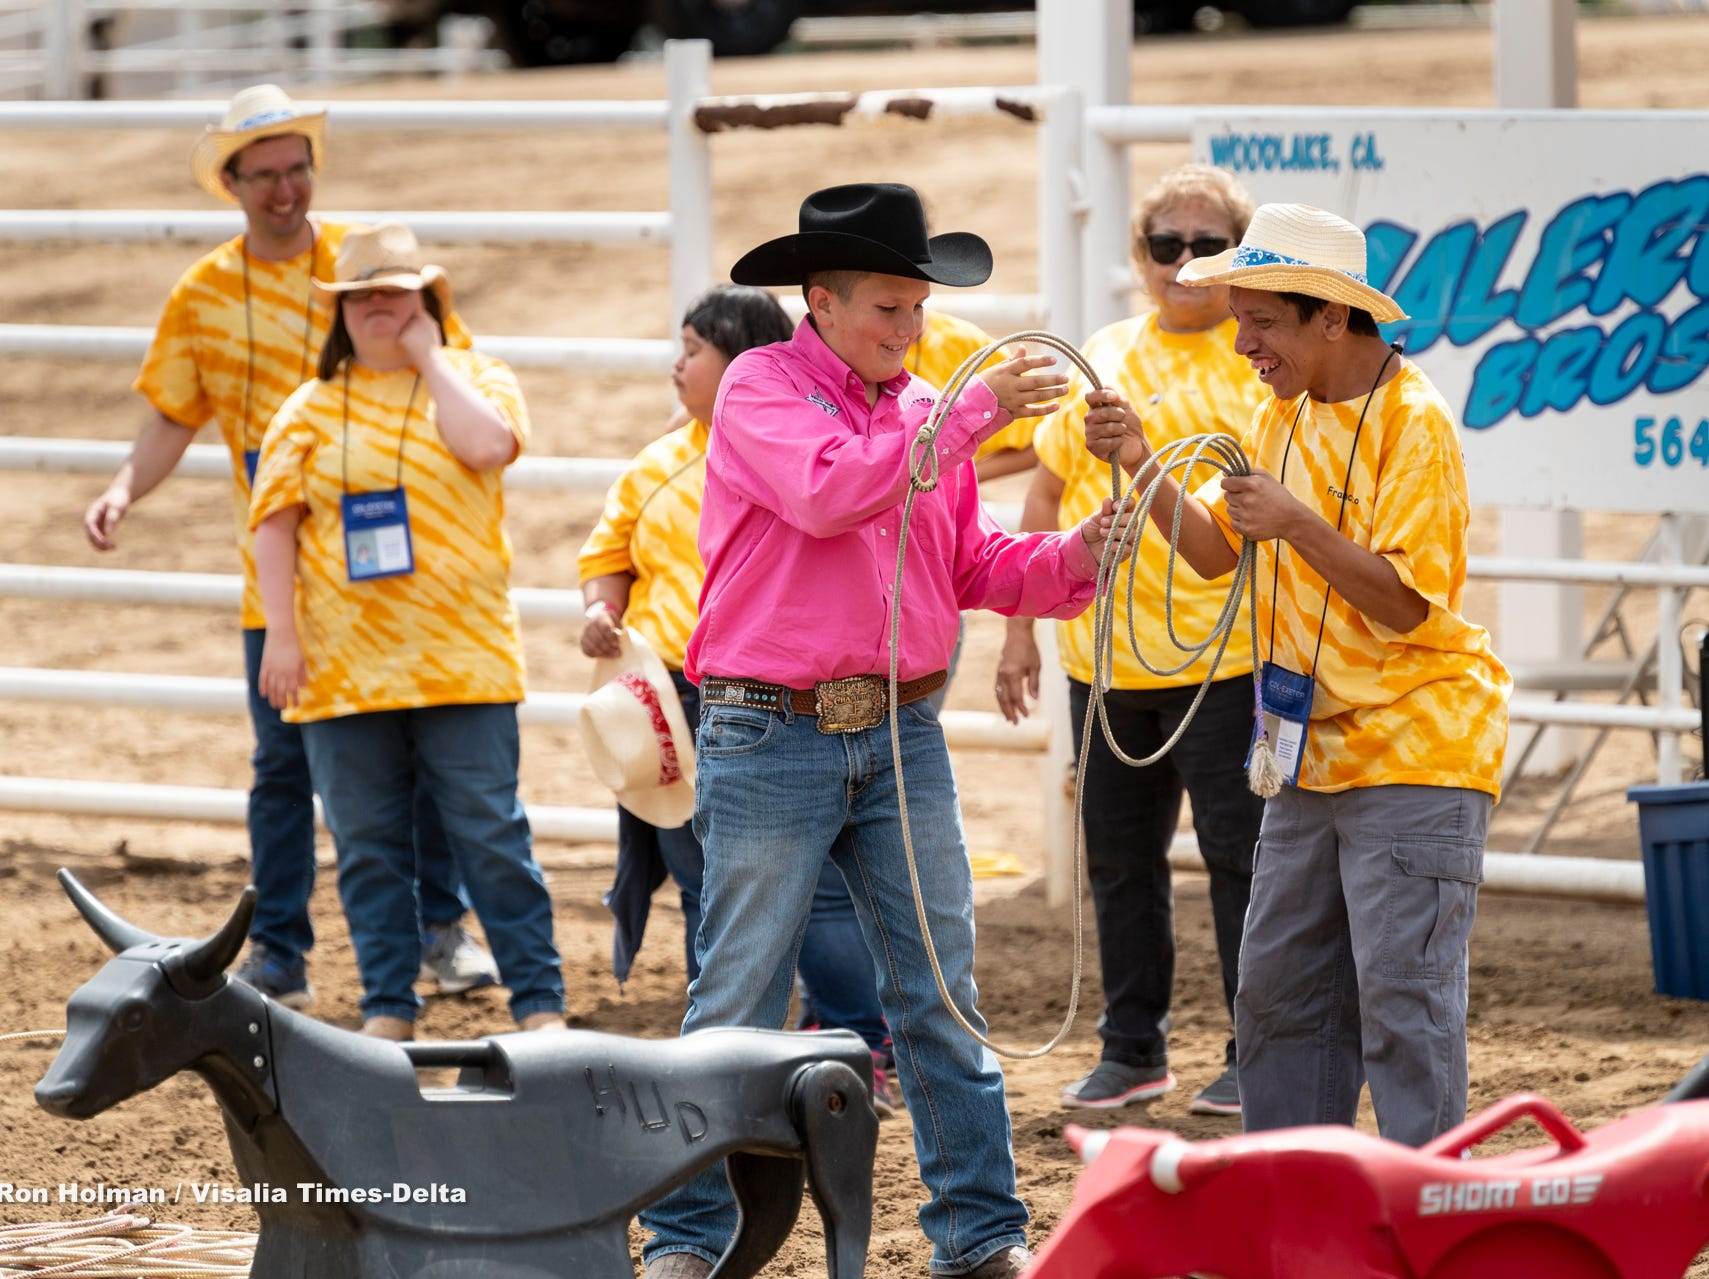 """Francisco Chavez, right, gets a roping lesson from Wyatt Rose during the first """"High-Five Rodeo"""" at the Woodlake Rodeo Grounds on Friday, May 10, 2019. Participants from Exeter's Center for Discovery and Learning were paired up with real-life cowboys and cowgirls and other performers to experience modified rodeo-related stations in the rodeo arena."""